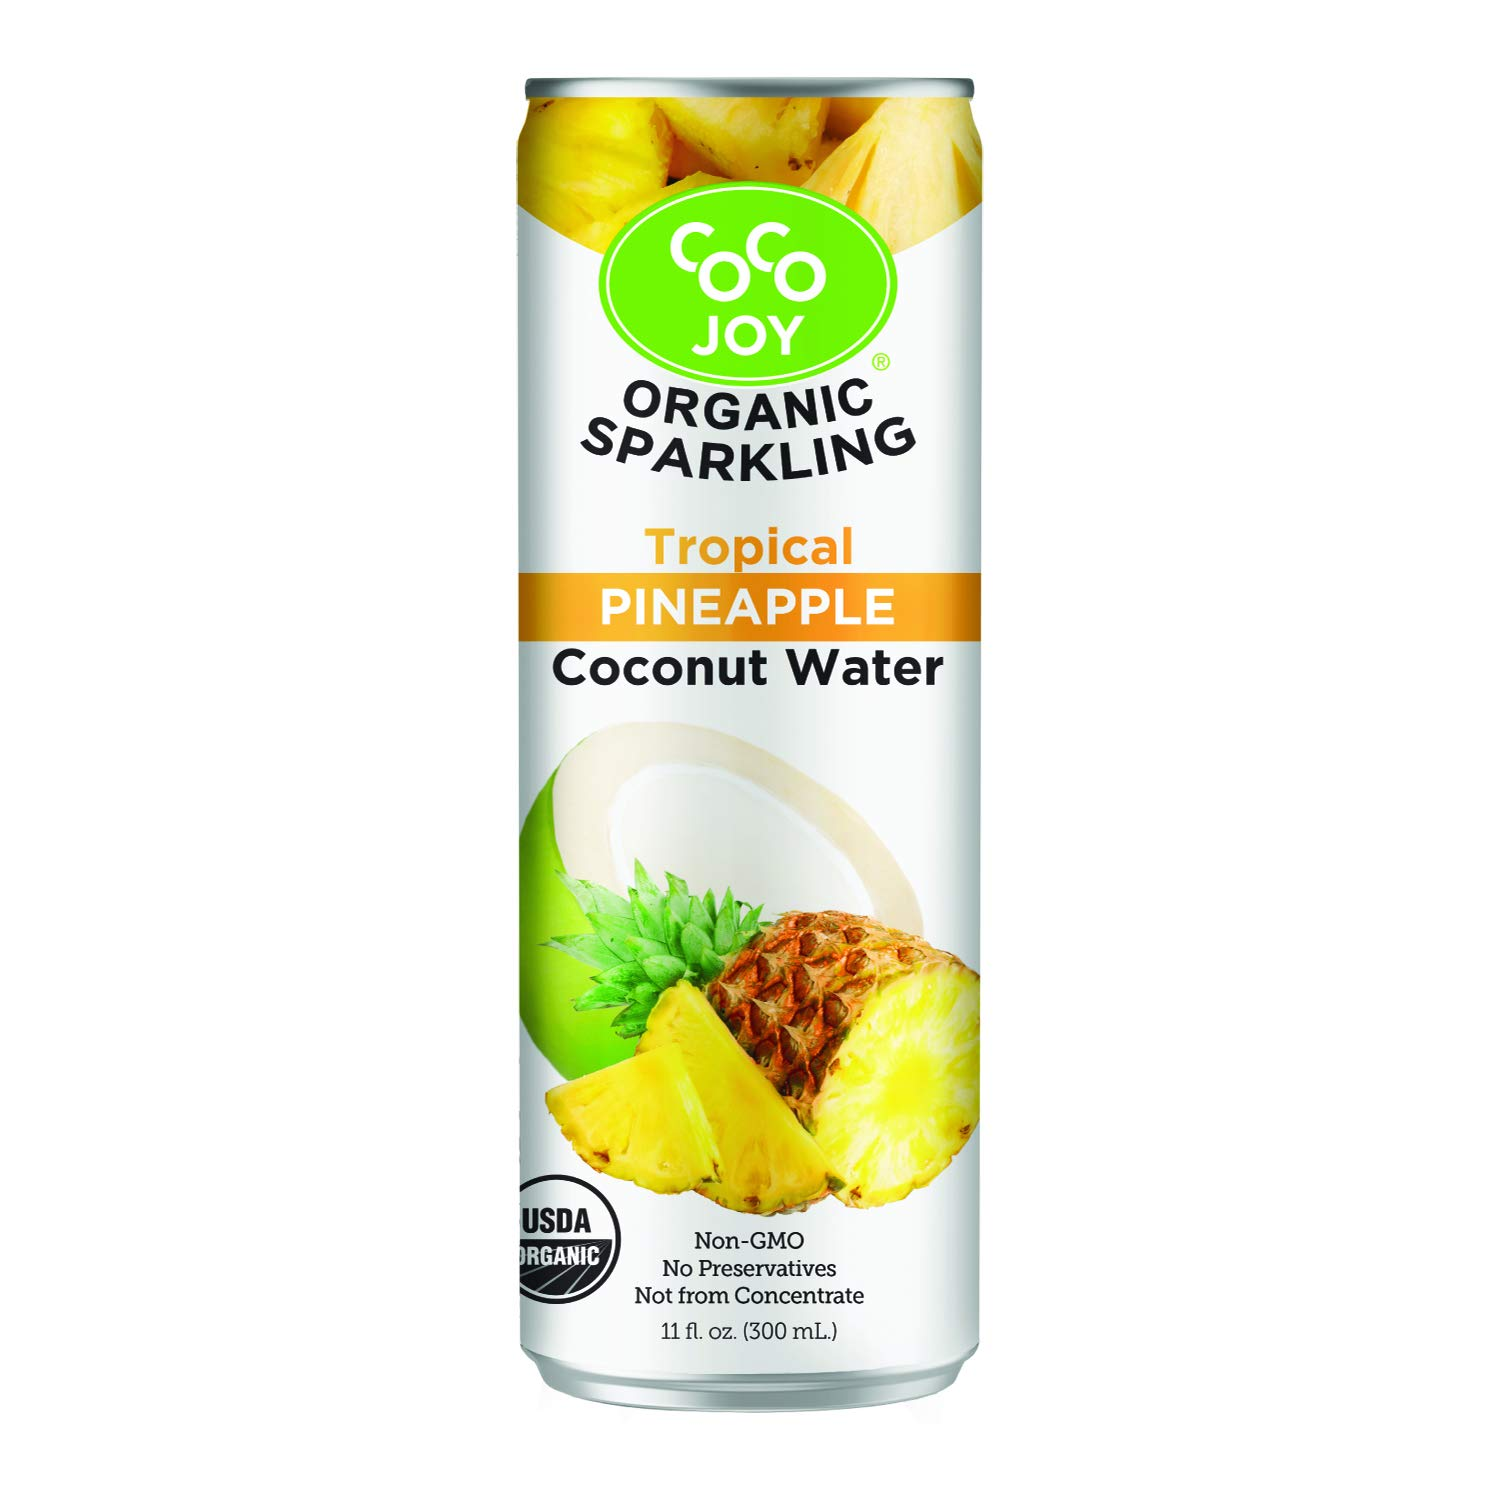 100% Organic Premium Sparkling Coco Joy Coconut Water 11 Fl oz Can - Tropical Pineapple - 12 Pack - Refreshing, Non-GMO, Packed with Electrolytes, No Preservatives